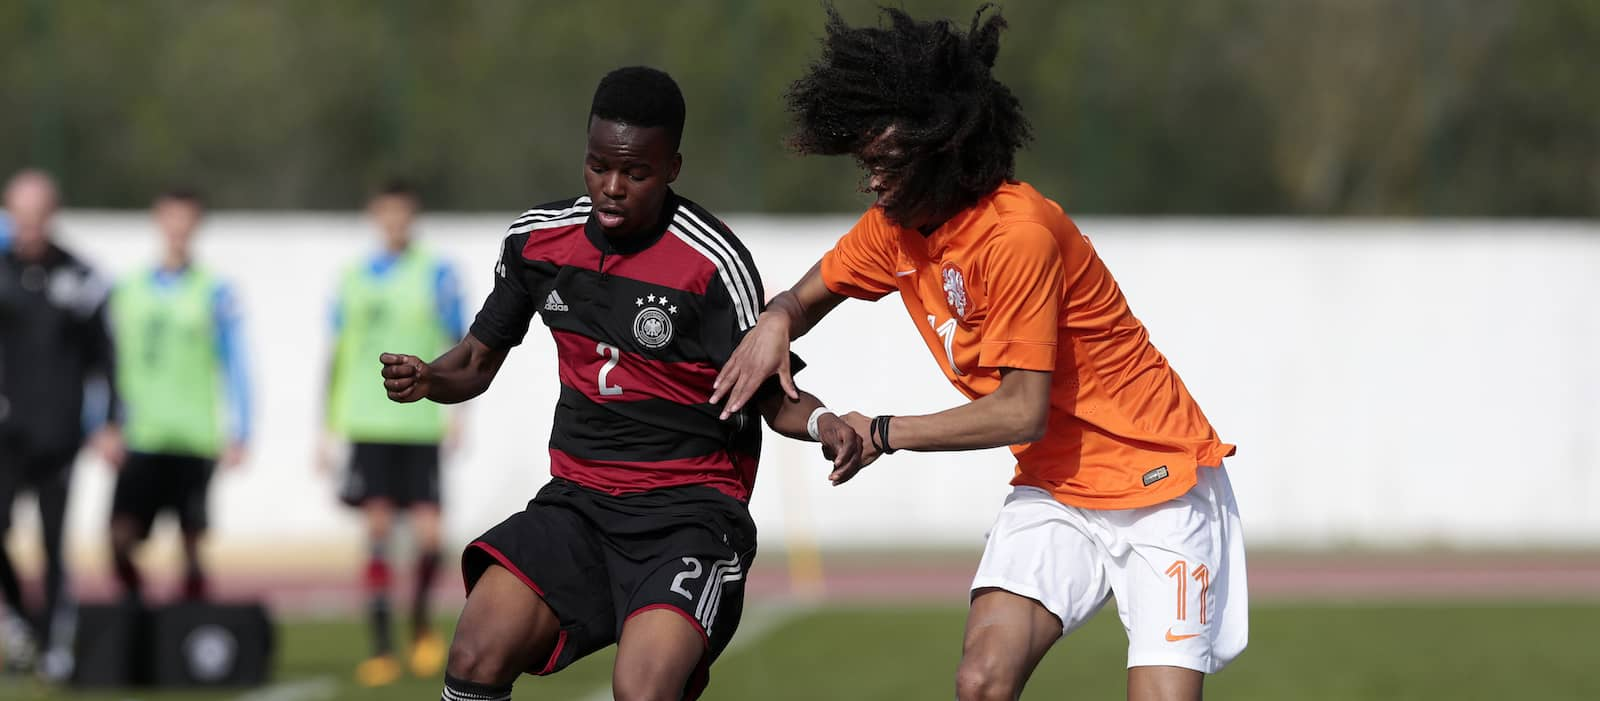 LIVE: Man United news, transfers and gossip – Tahith Chong effectively confirms Manchester United move